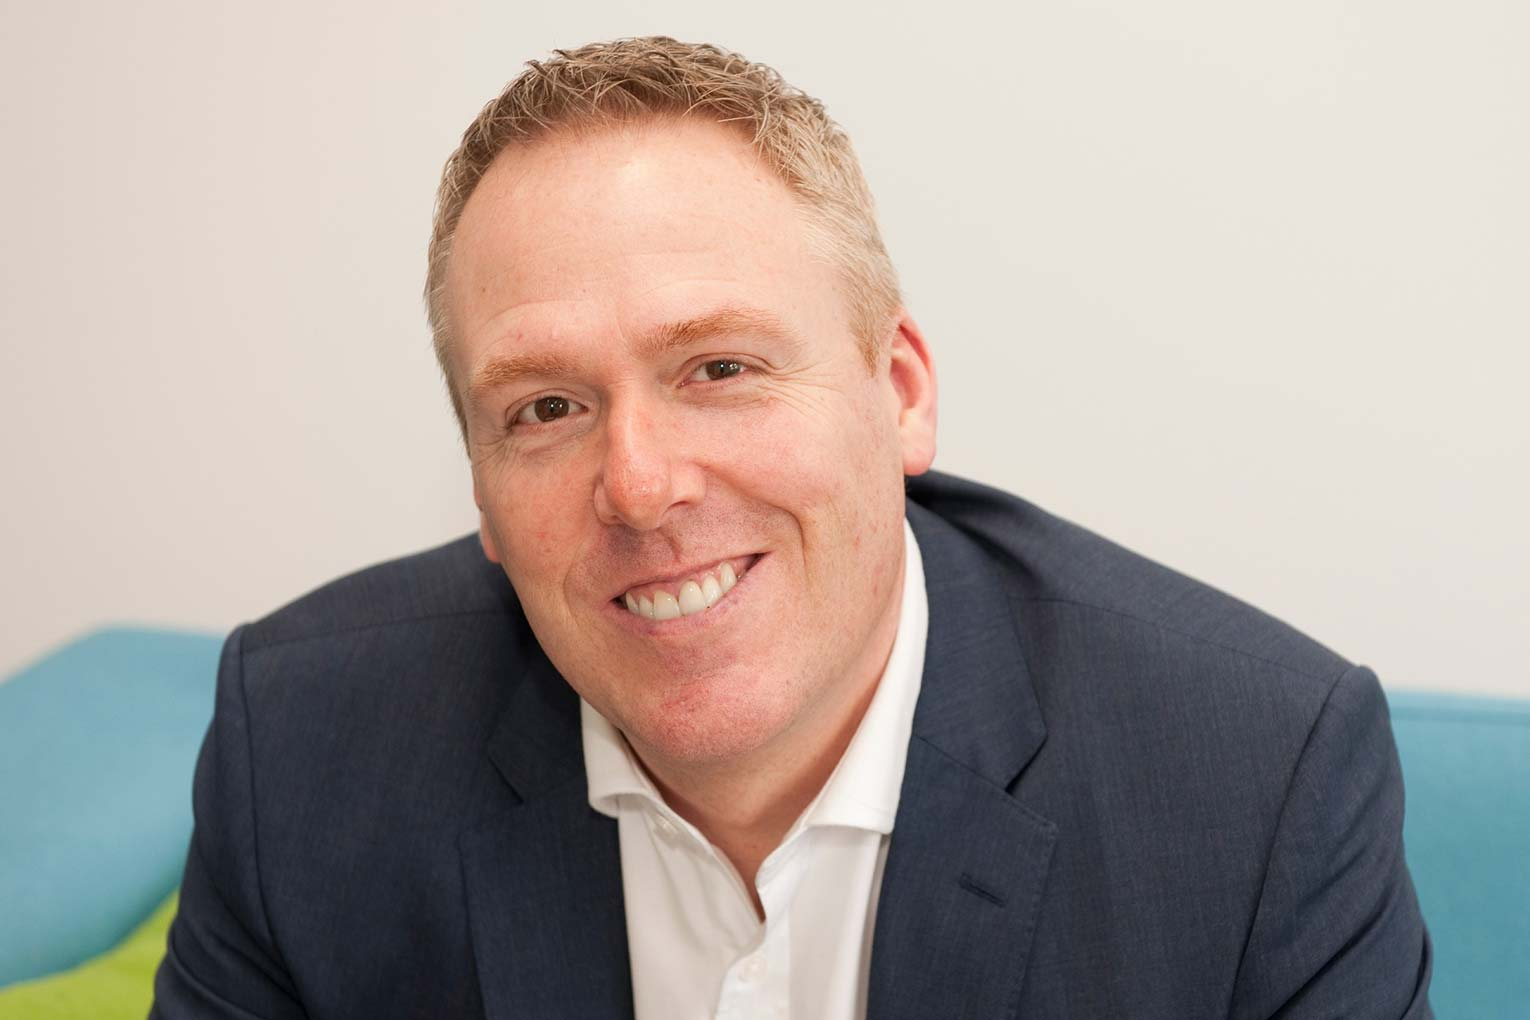 Accord Mortgages expands underwriting team - BestAdvice